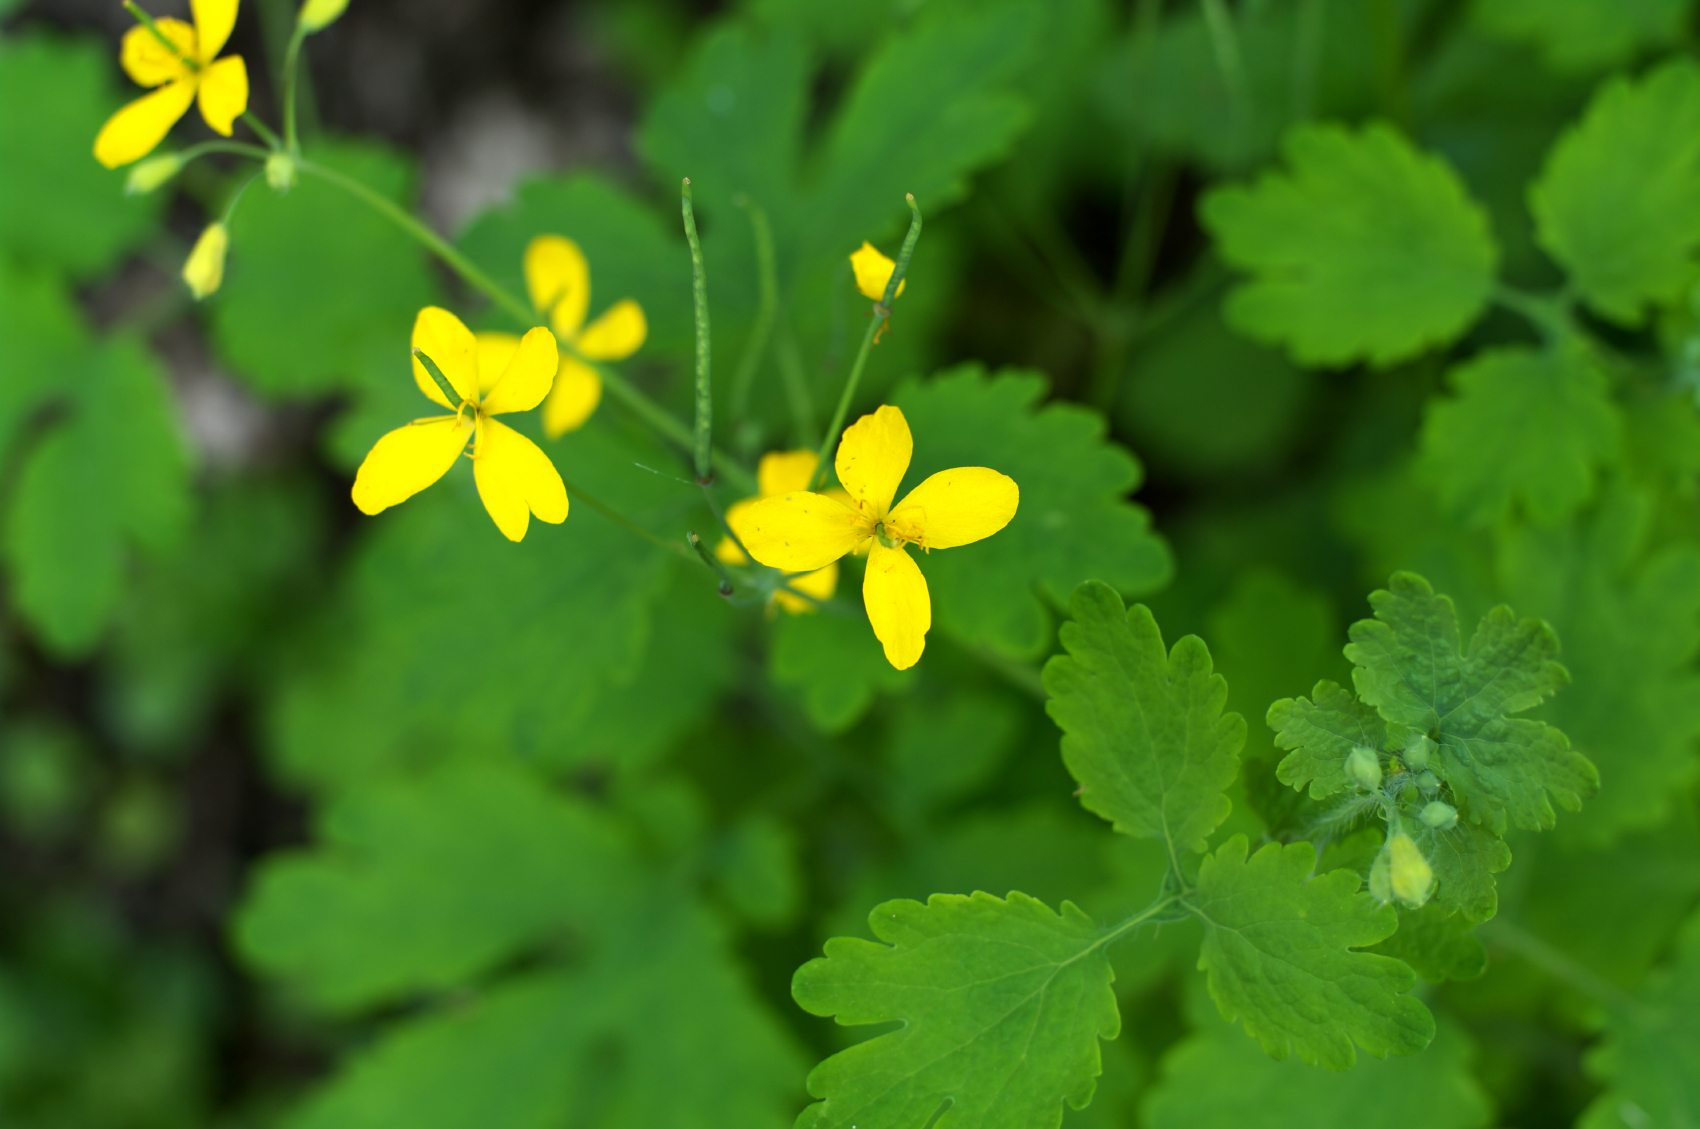 Celandine Plant Information - Where Does Greater Celandine Grow